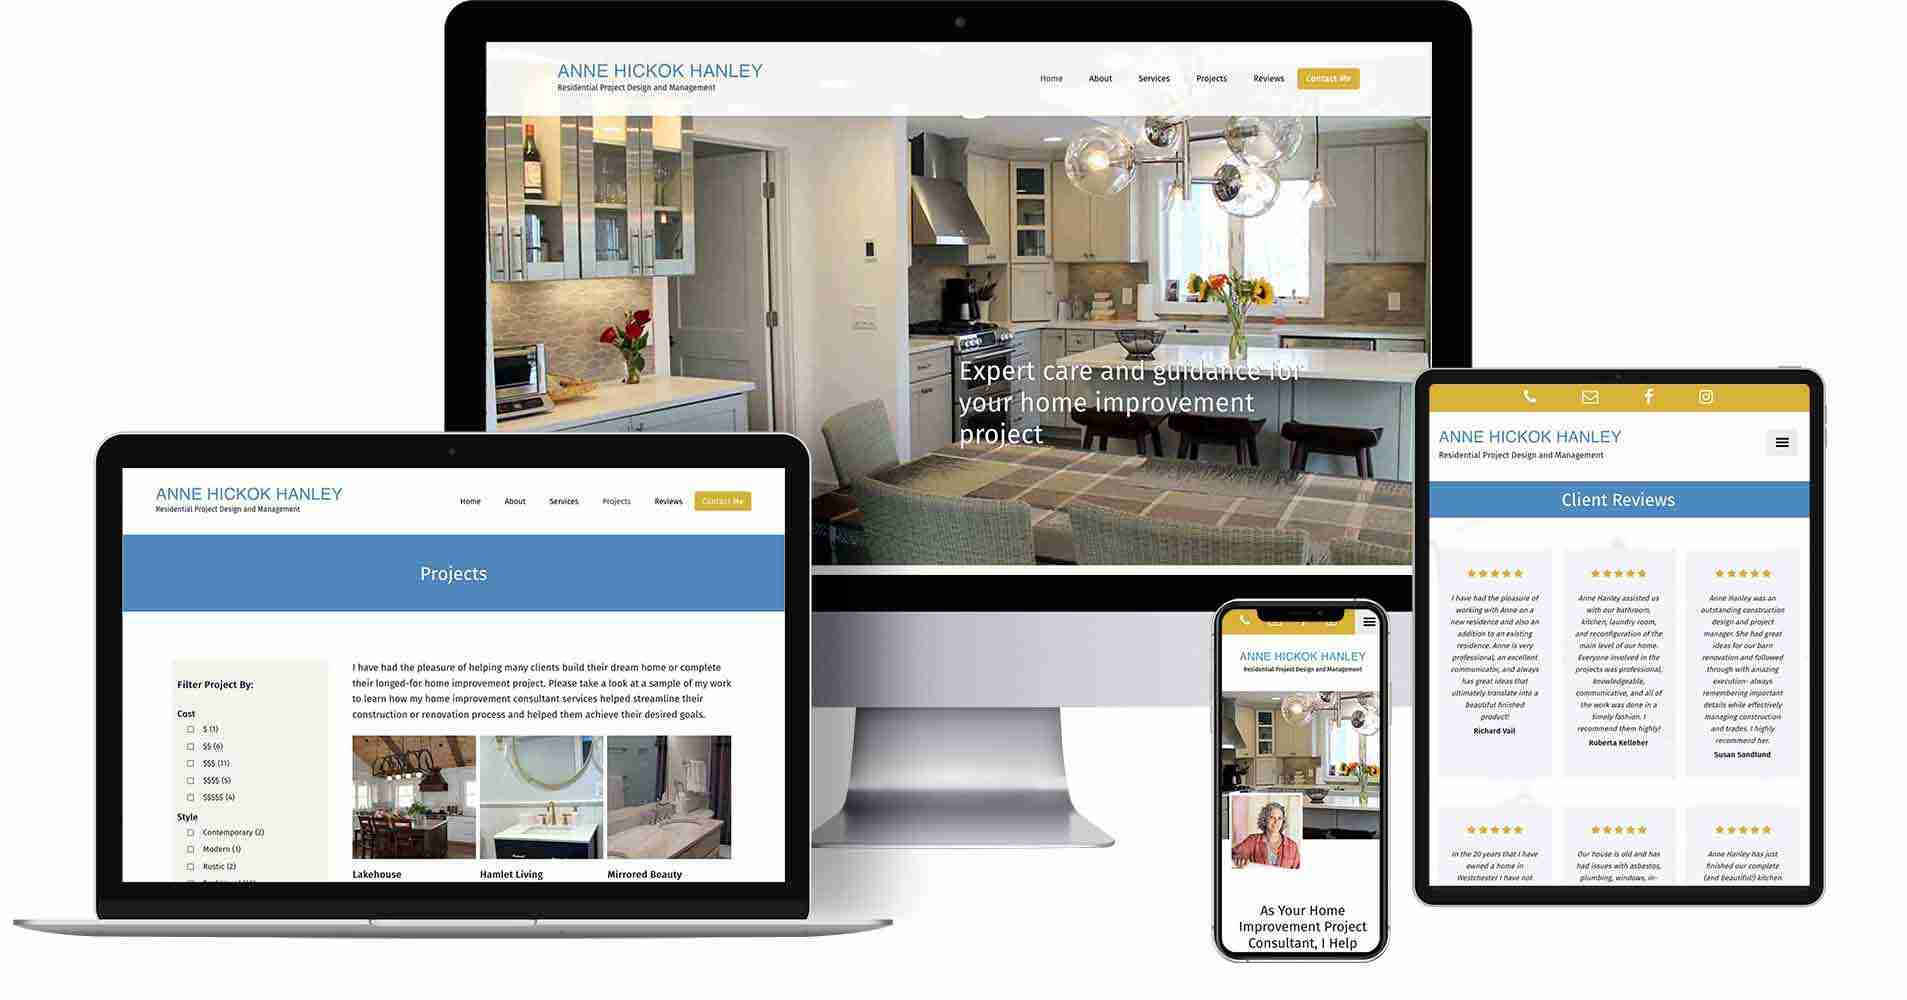 Recent projects - Renovation Consultant Website - Anne Hickok Hanley